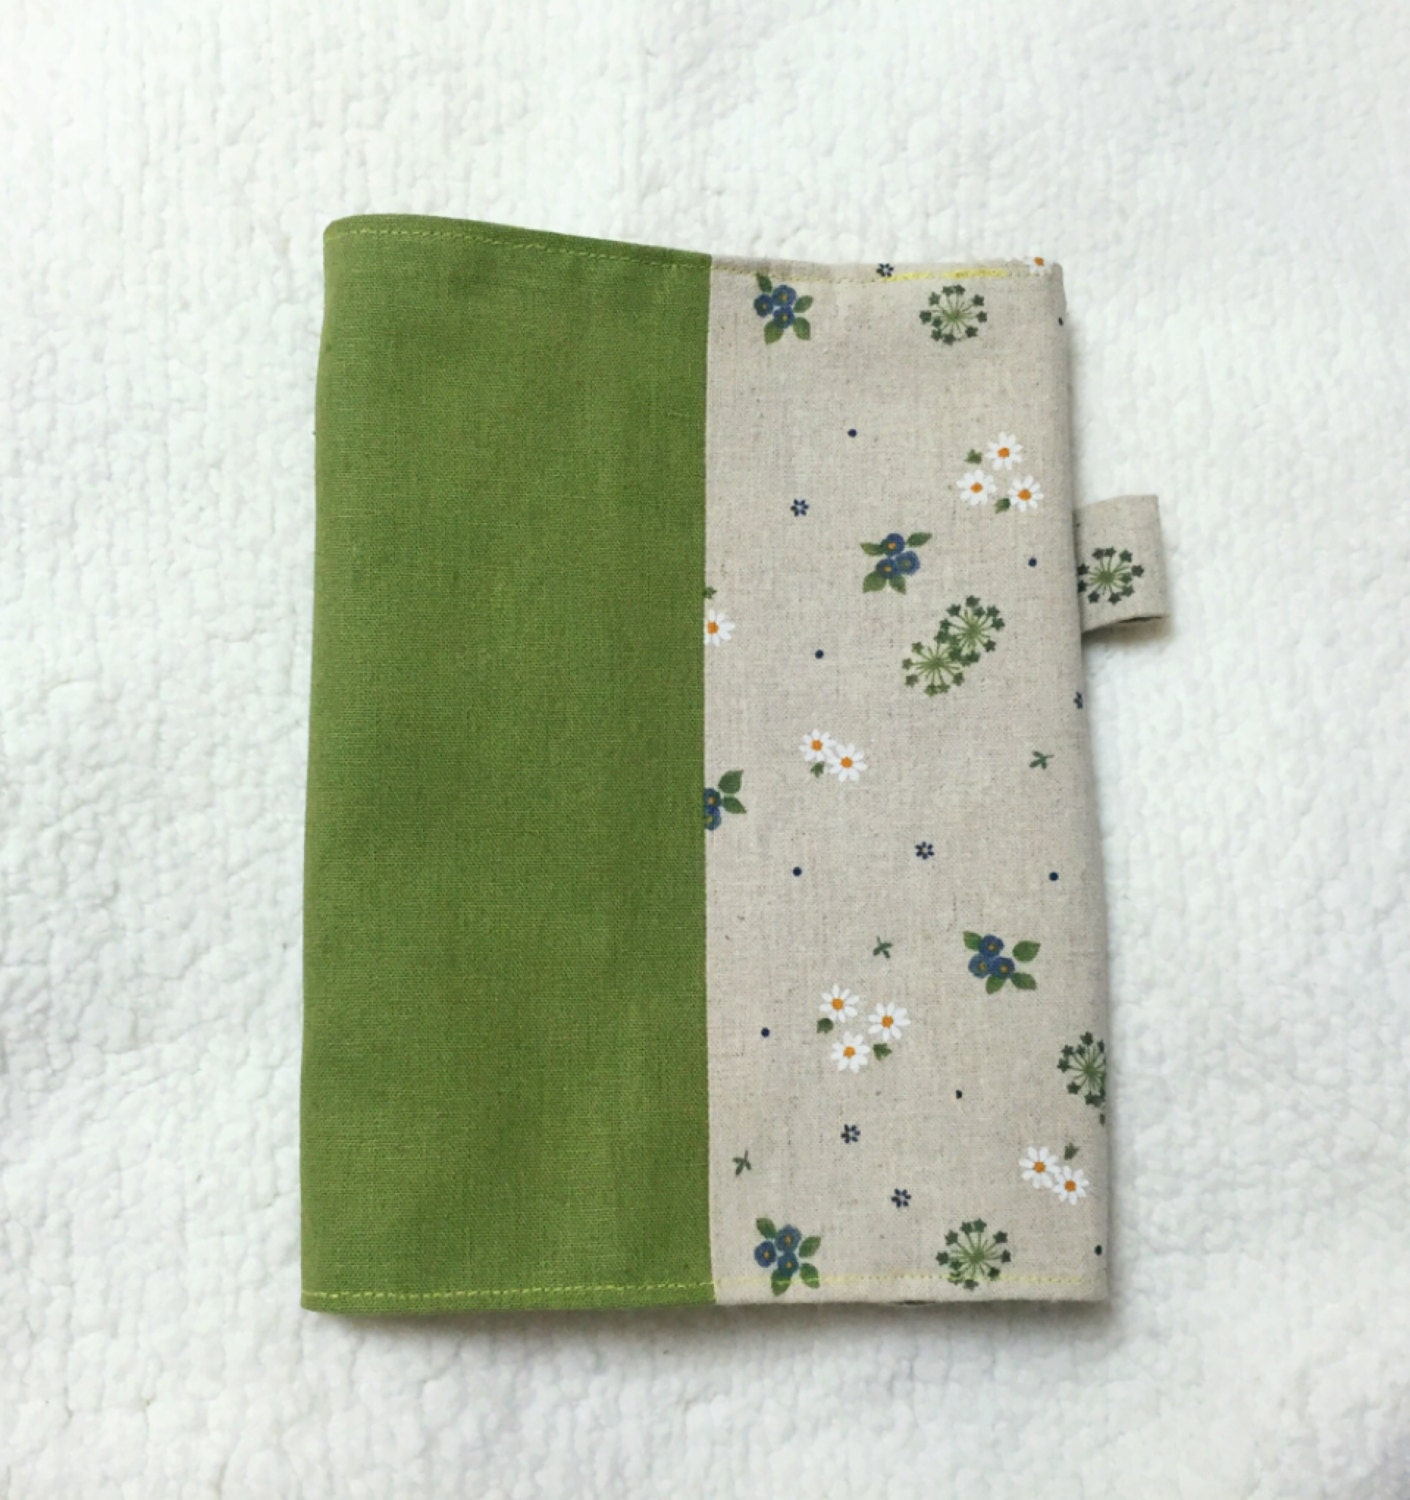 Adjustable Fabric Book Cover : Adjustable fabric bookcover with little flowers in beige and